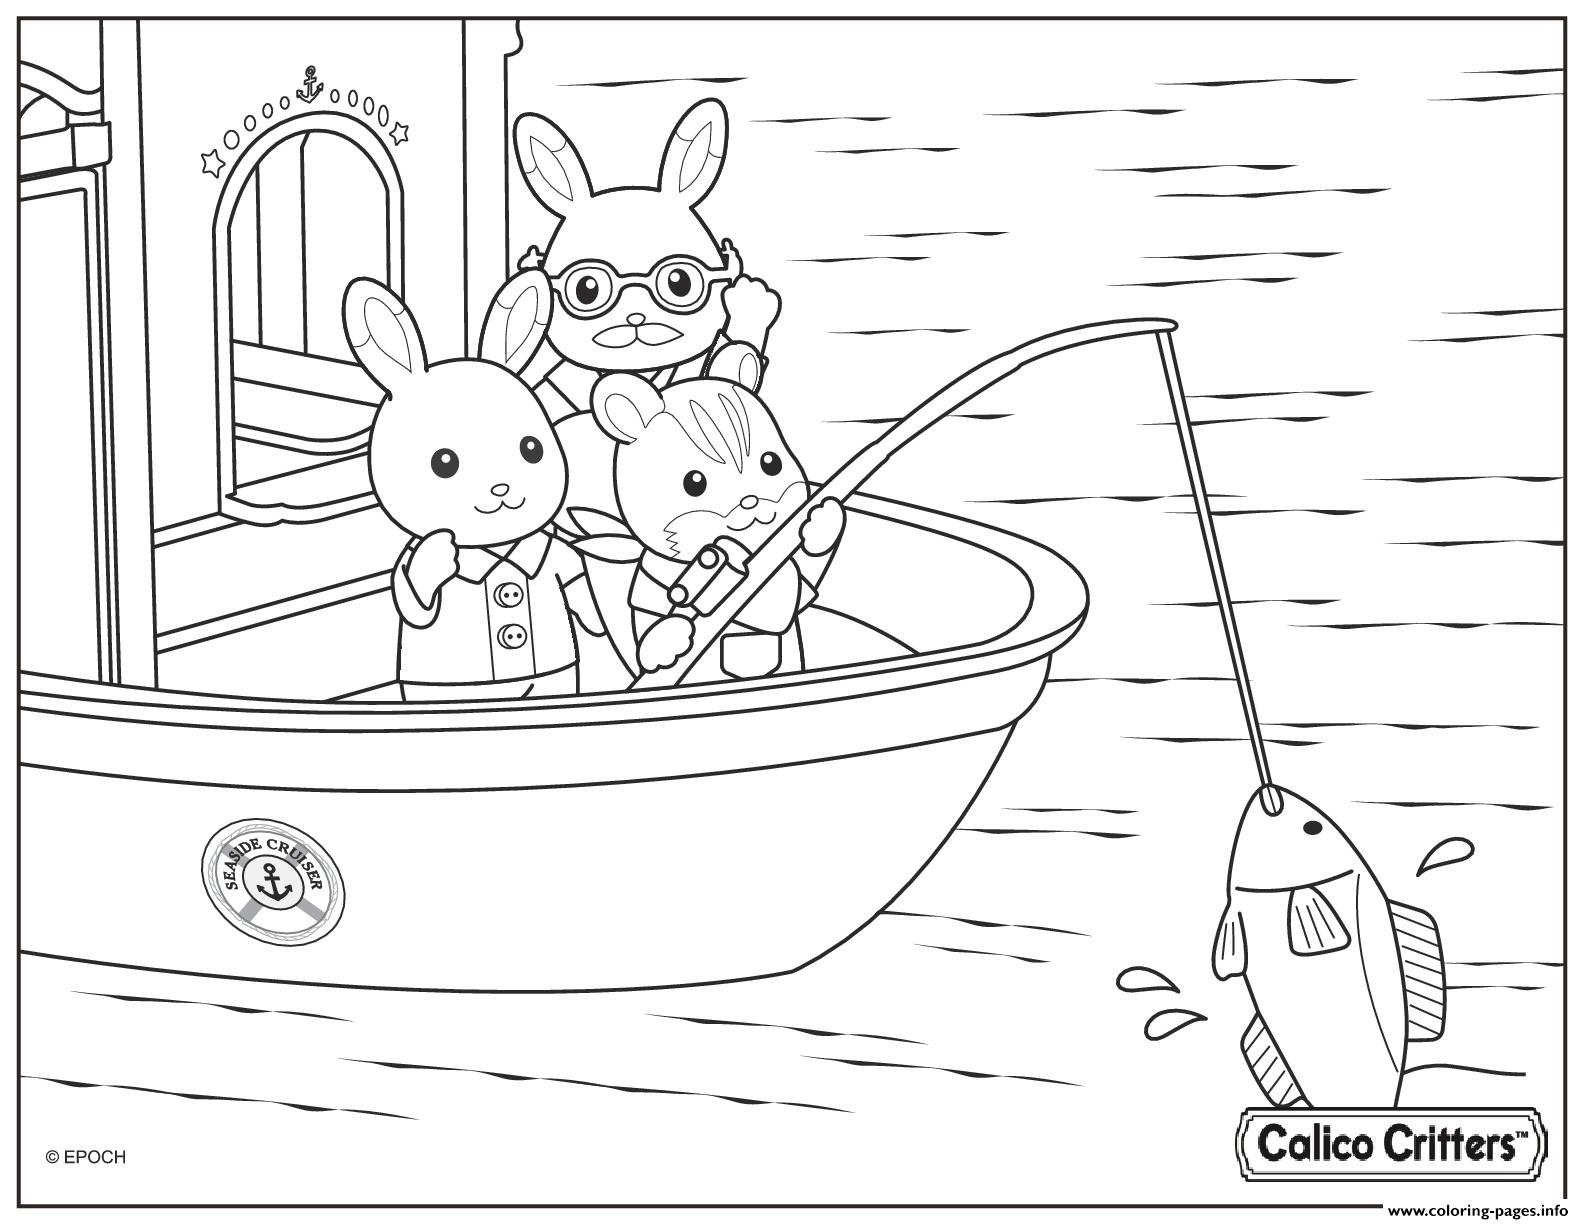 calico critters fishing coloring pages printable